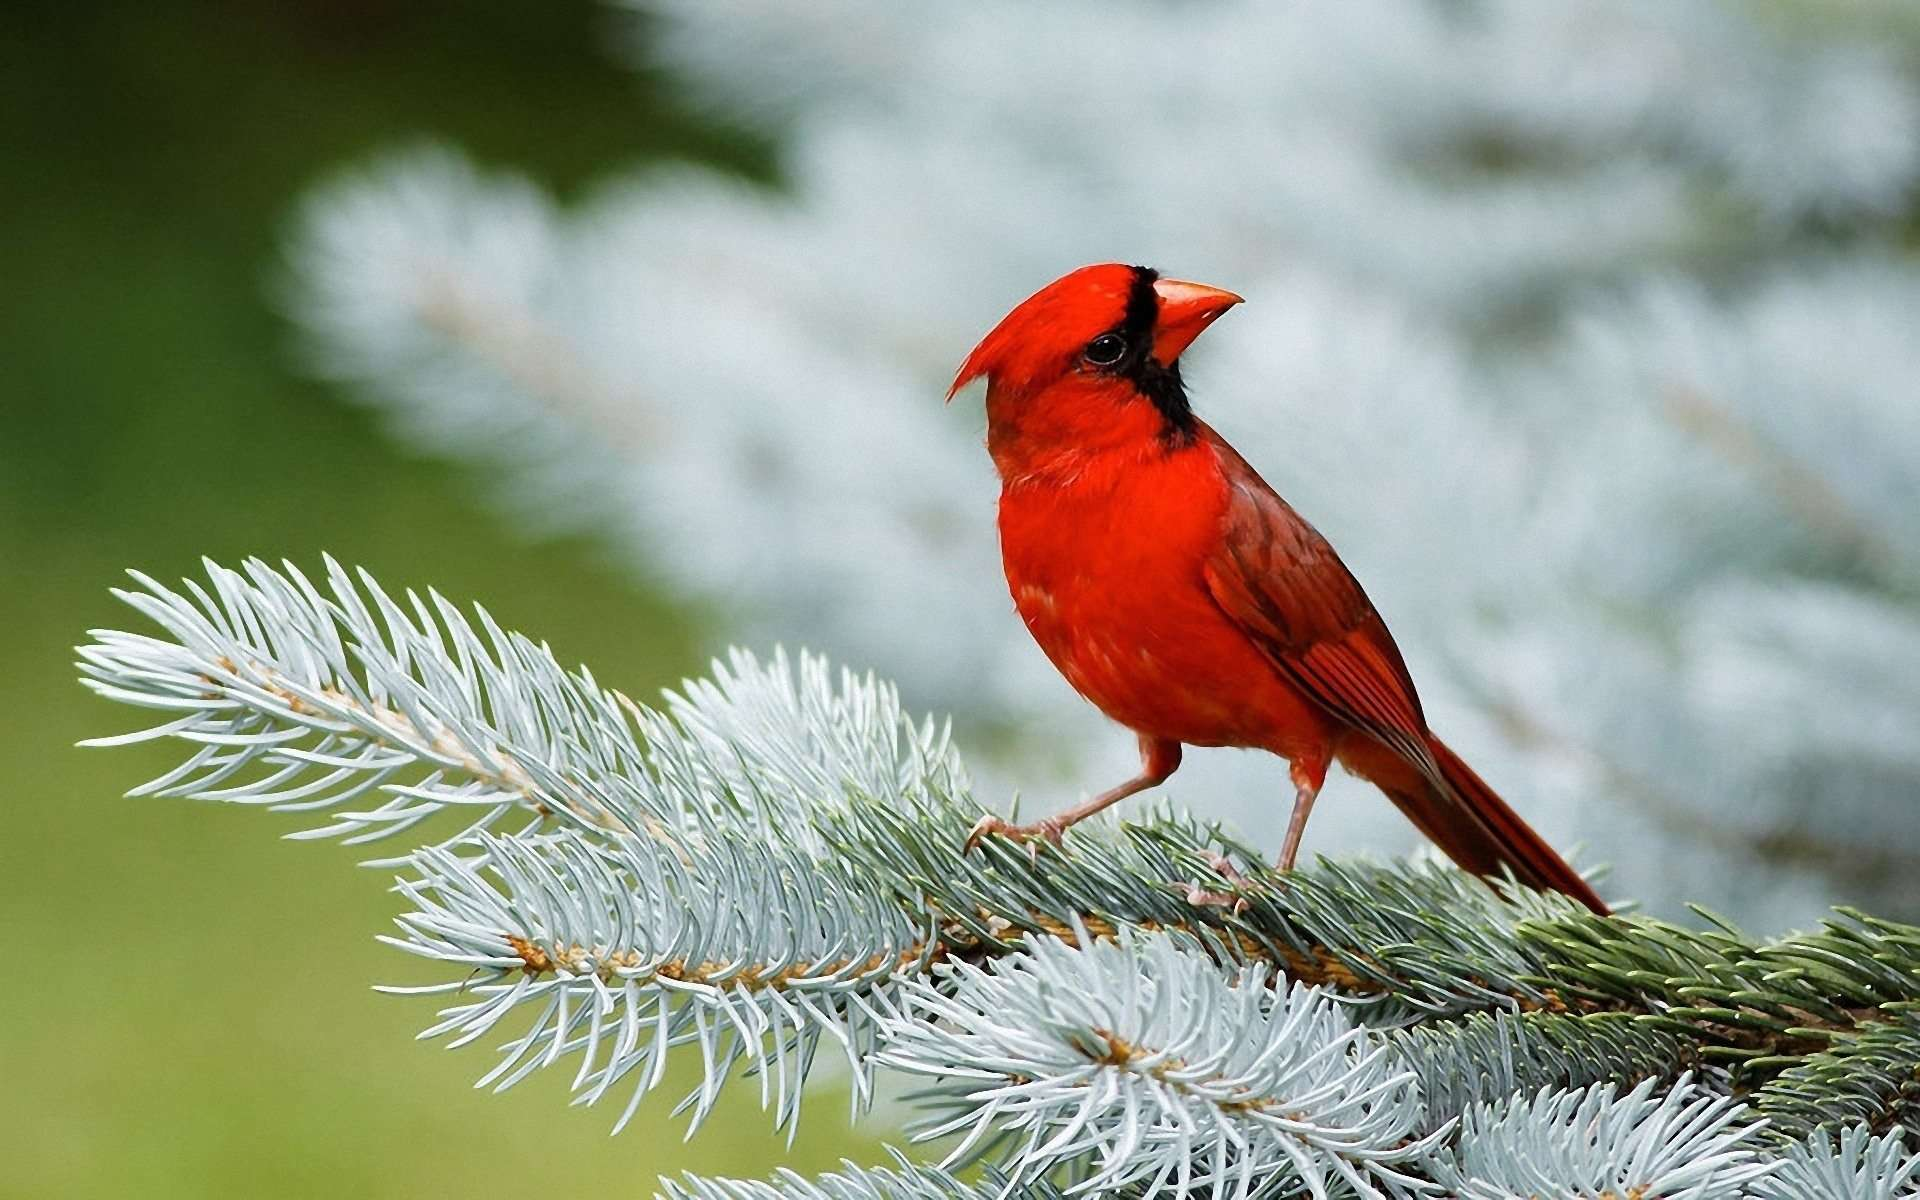 Bird Wallpaper Adorable Cardinal Bird Wallpapers  Wallpaper Cave Inspiration